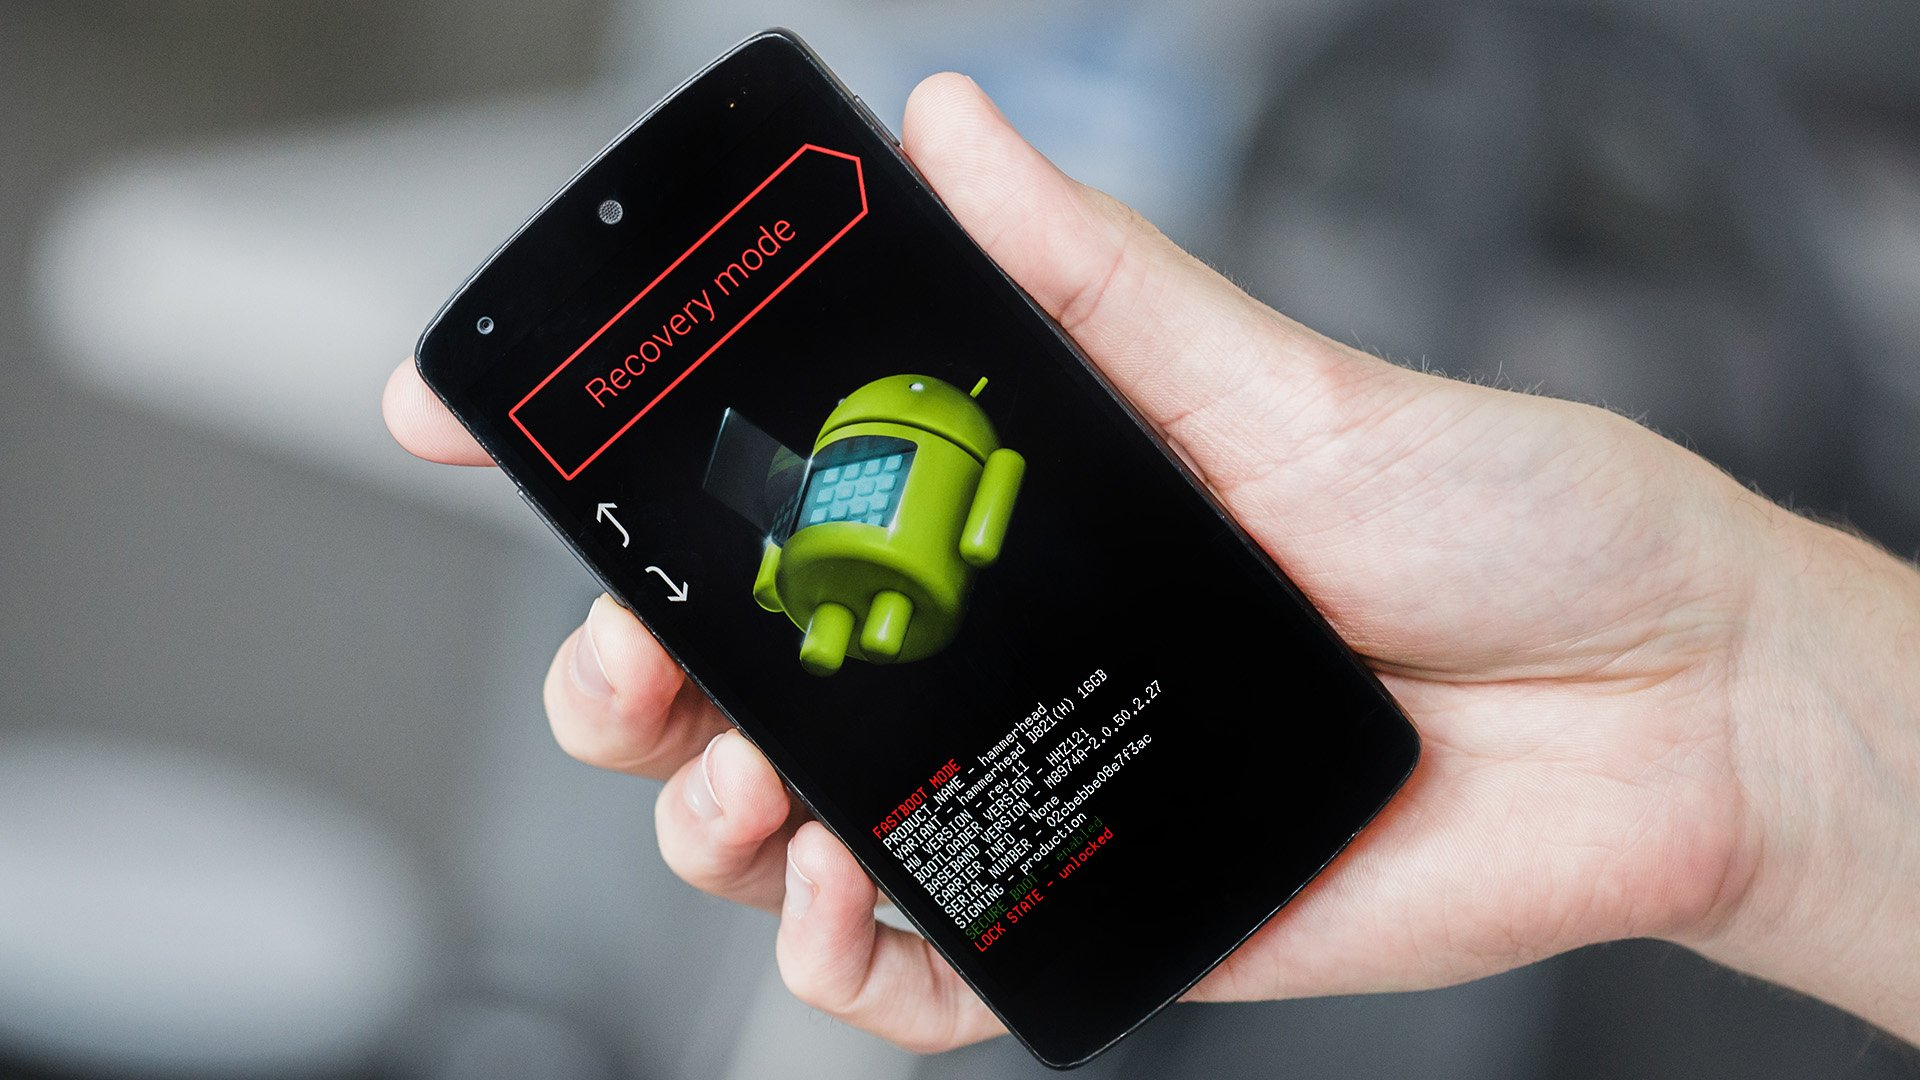 How to unlock nexus 5 bootloader the first step for modding how to unlock nexus 5 bootloader the first step for modding androidpit ccuart Gallery